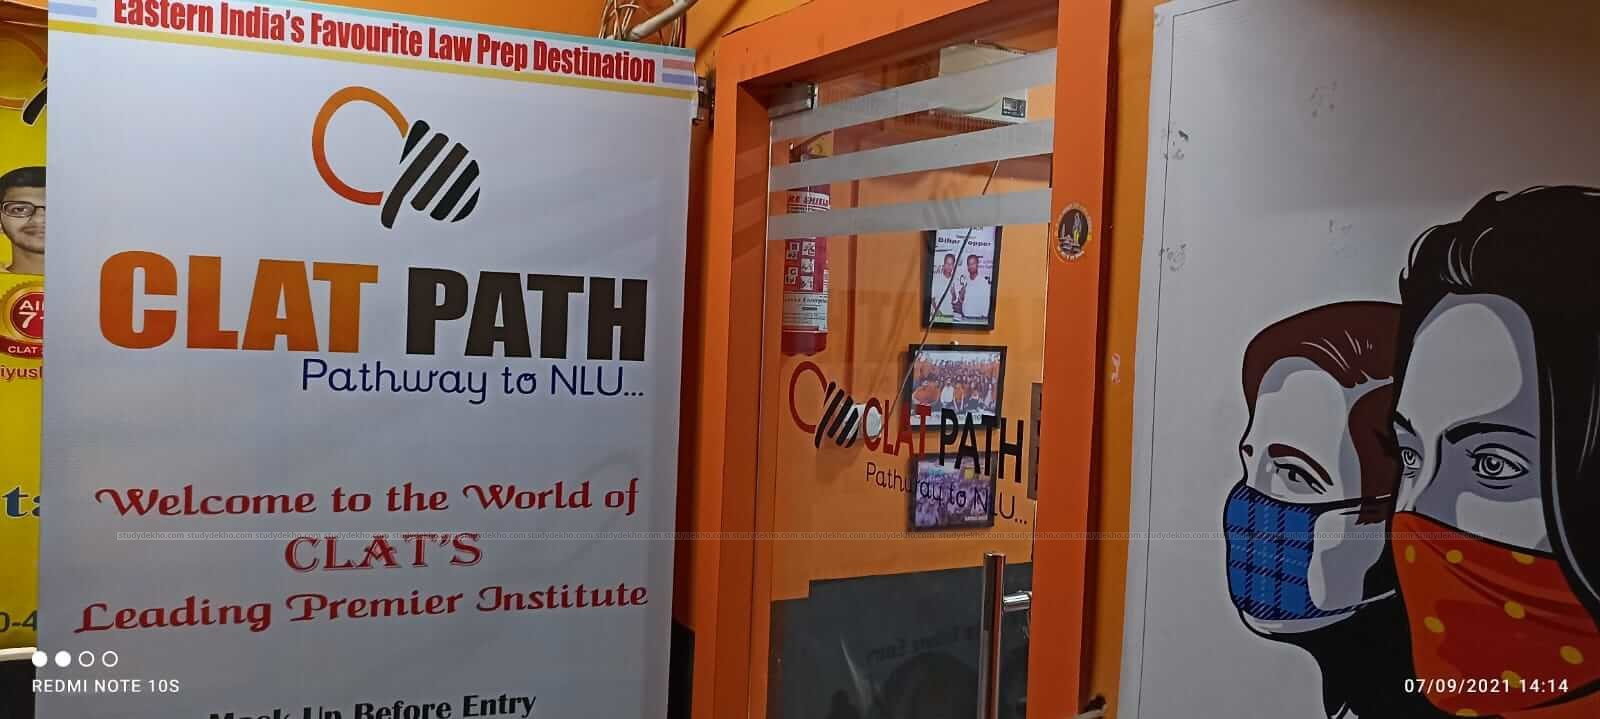 Clat Path Gallery